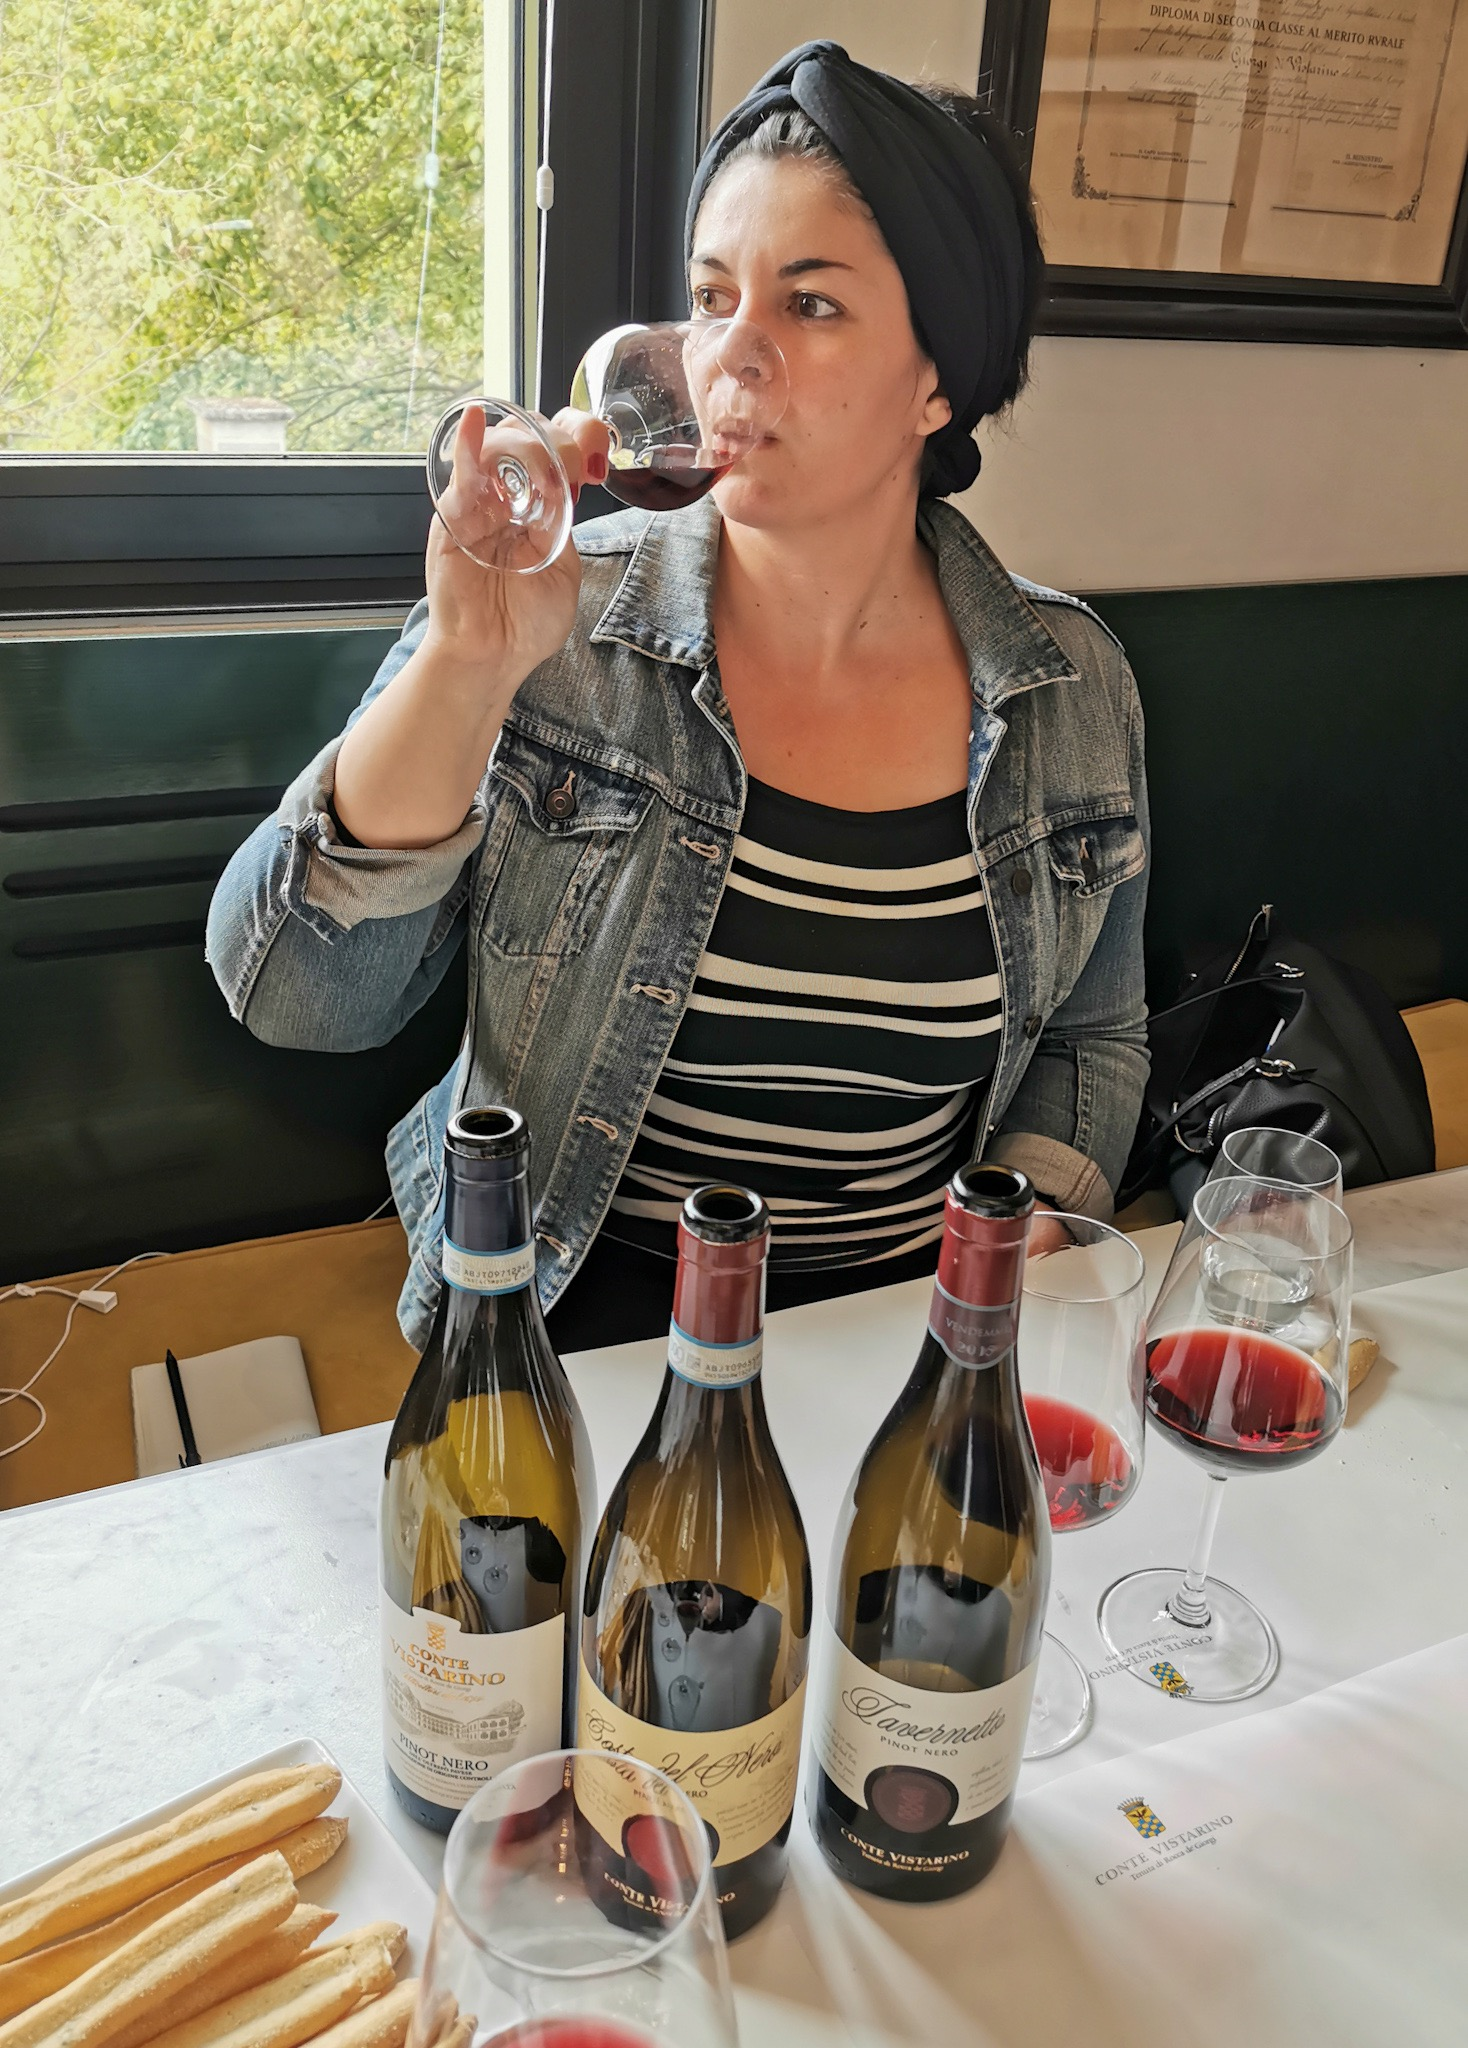 Wine tasting at Conte Vistarino winery in Oltrepò Pavese